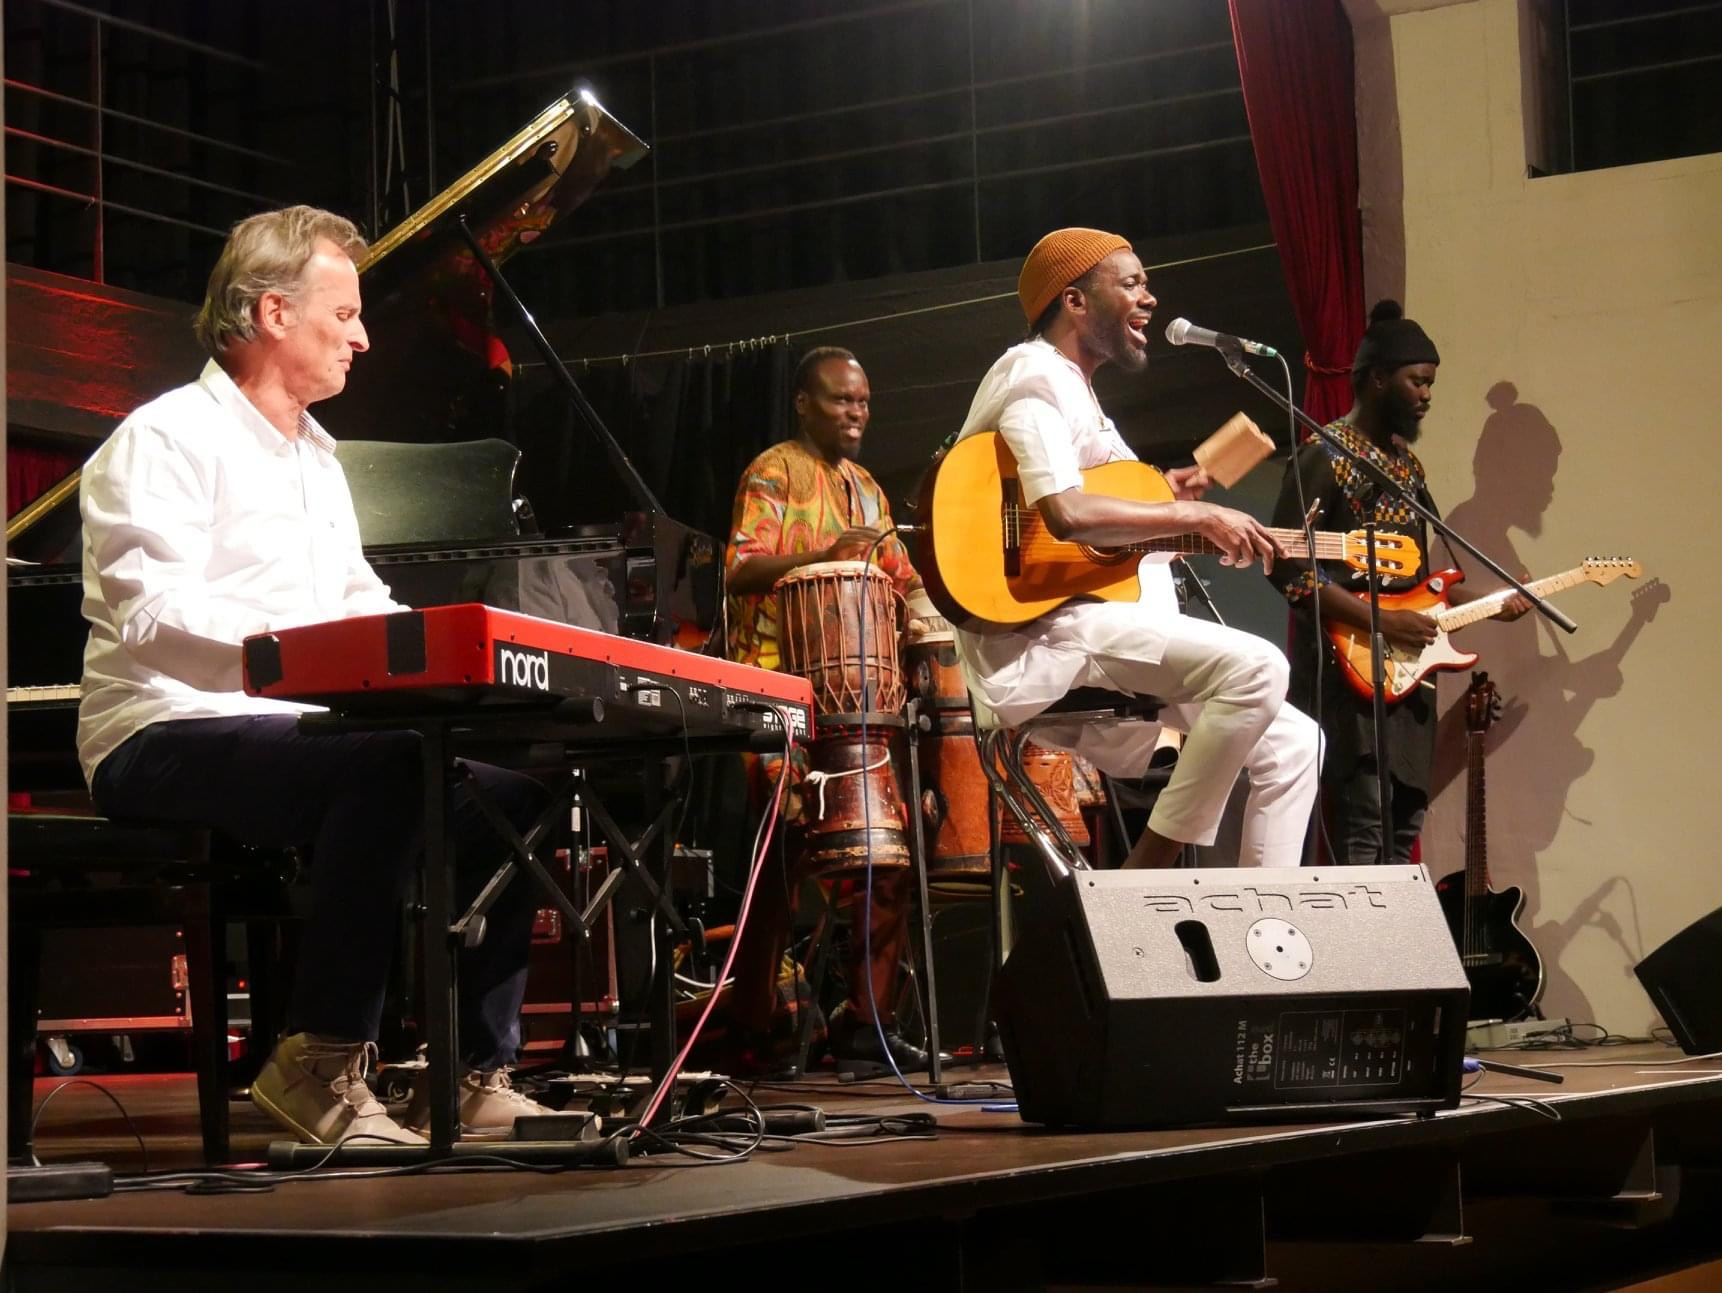 GlobalMusicOrchestra – The Westafrican Project